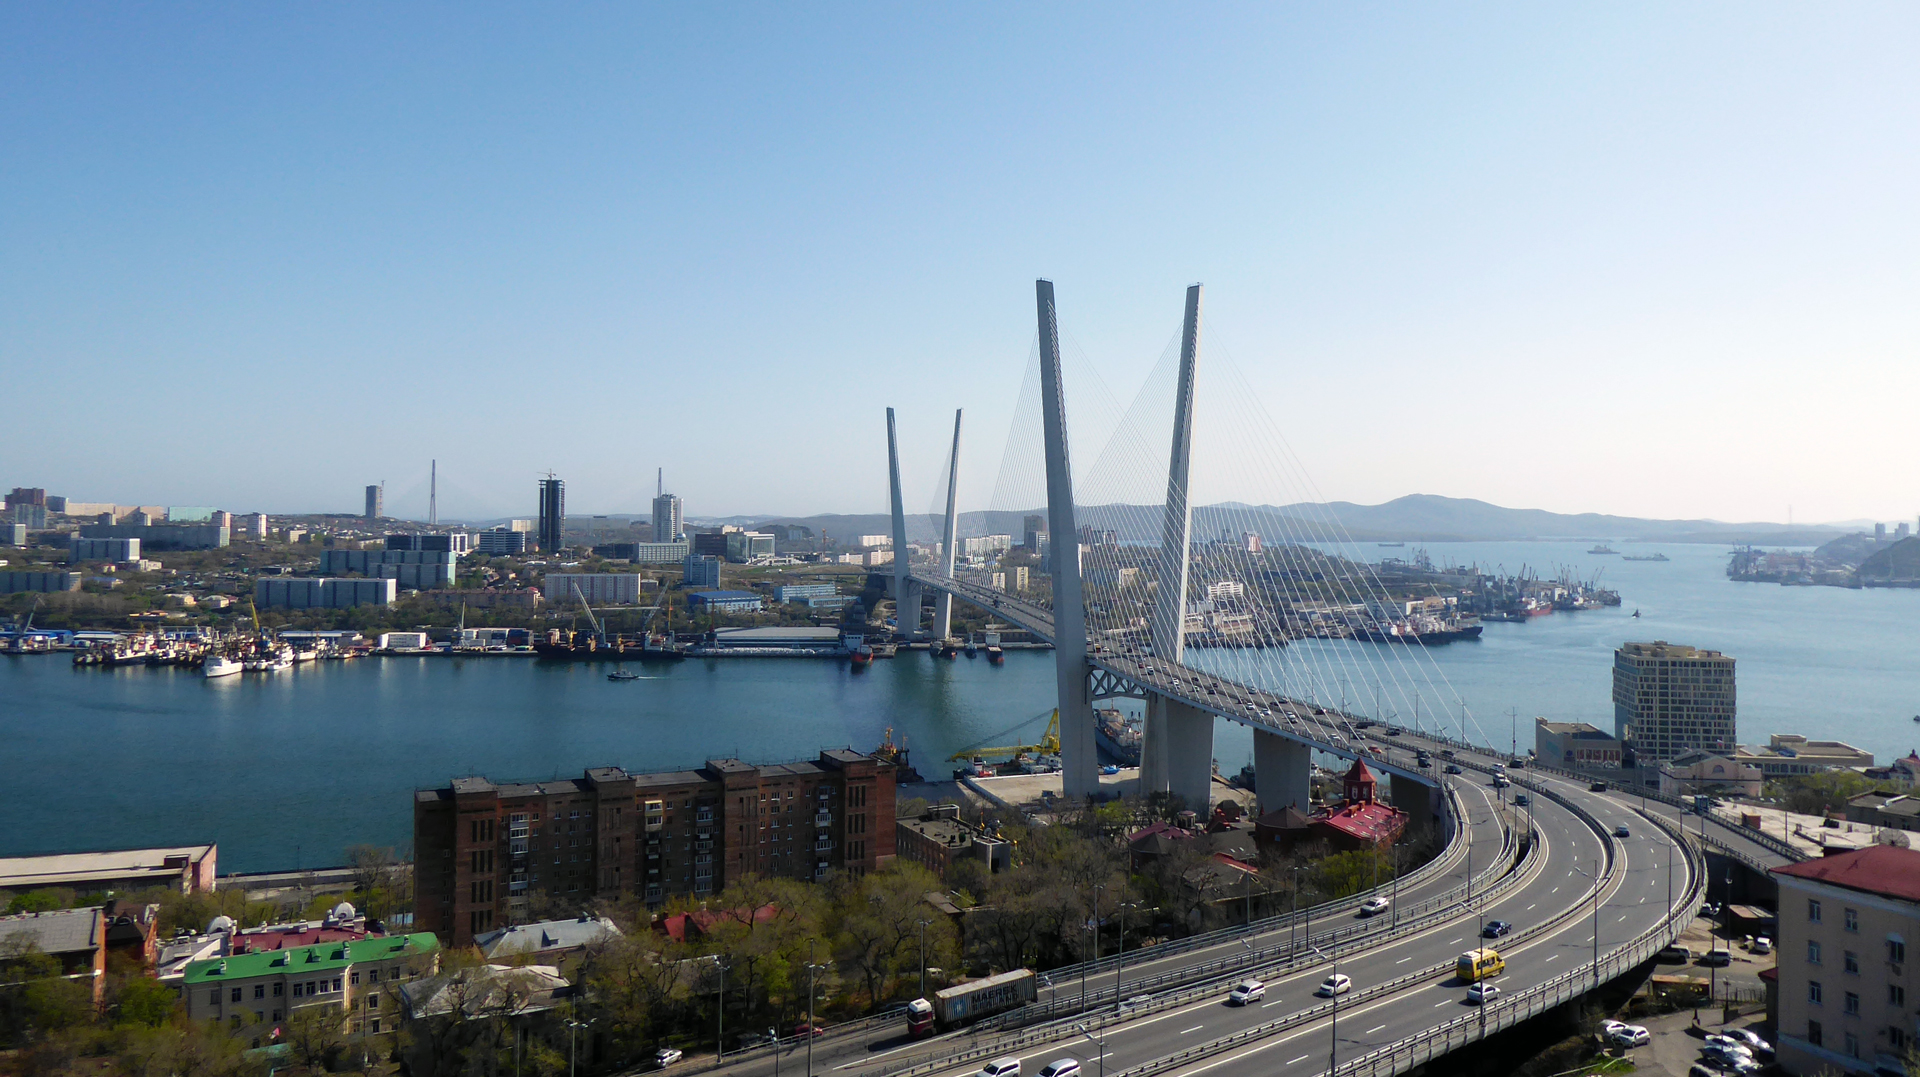 Vladivostok Far East Russia Overland Journeys Tour